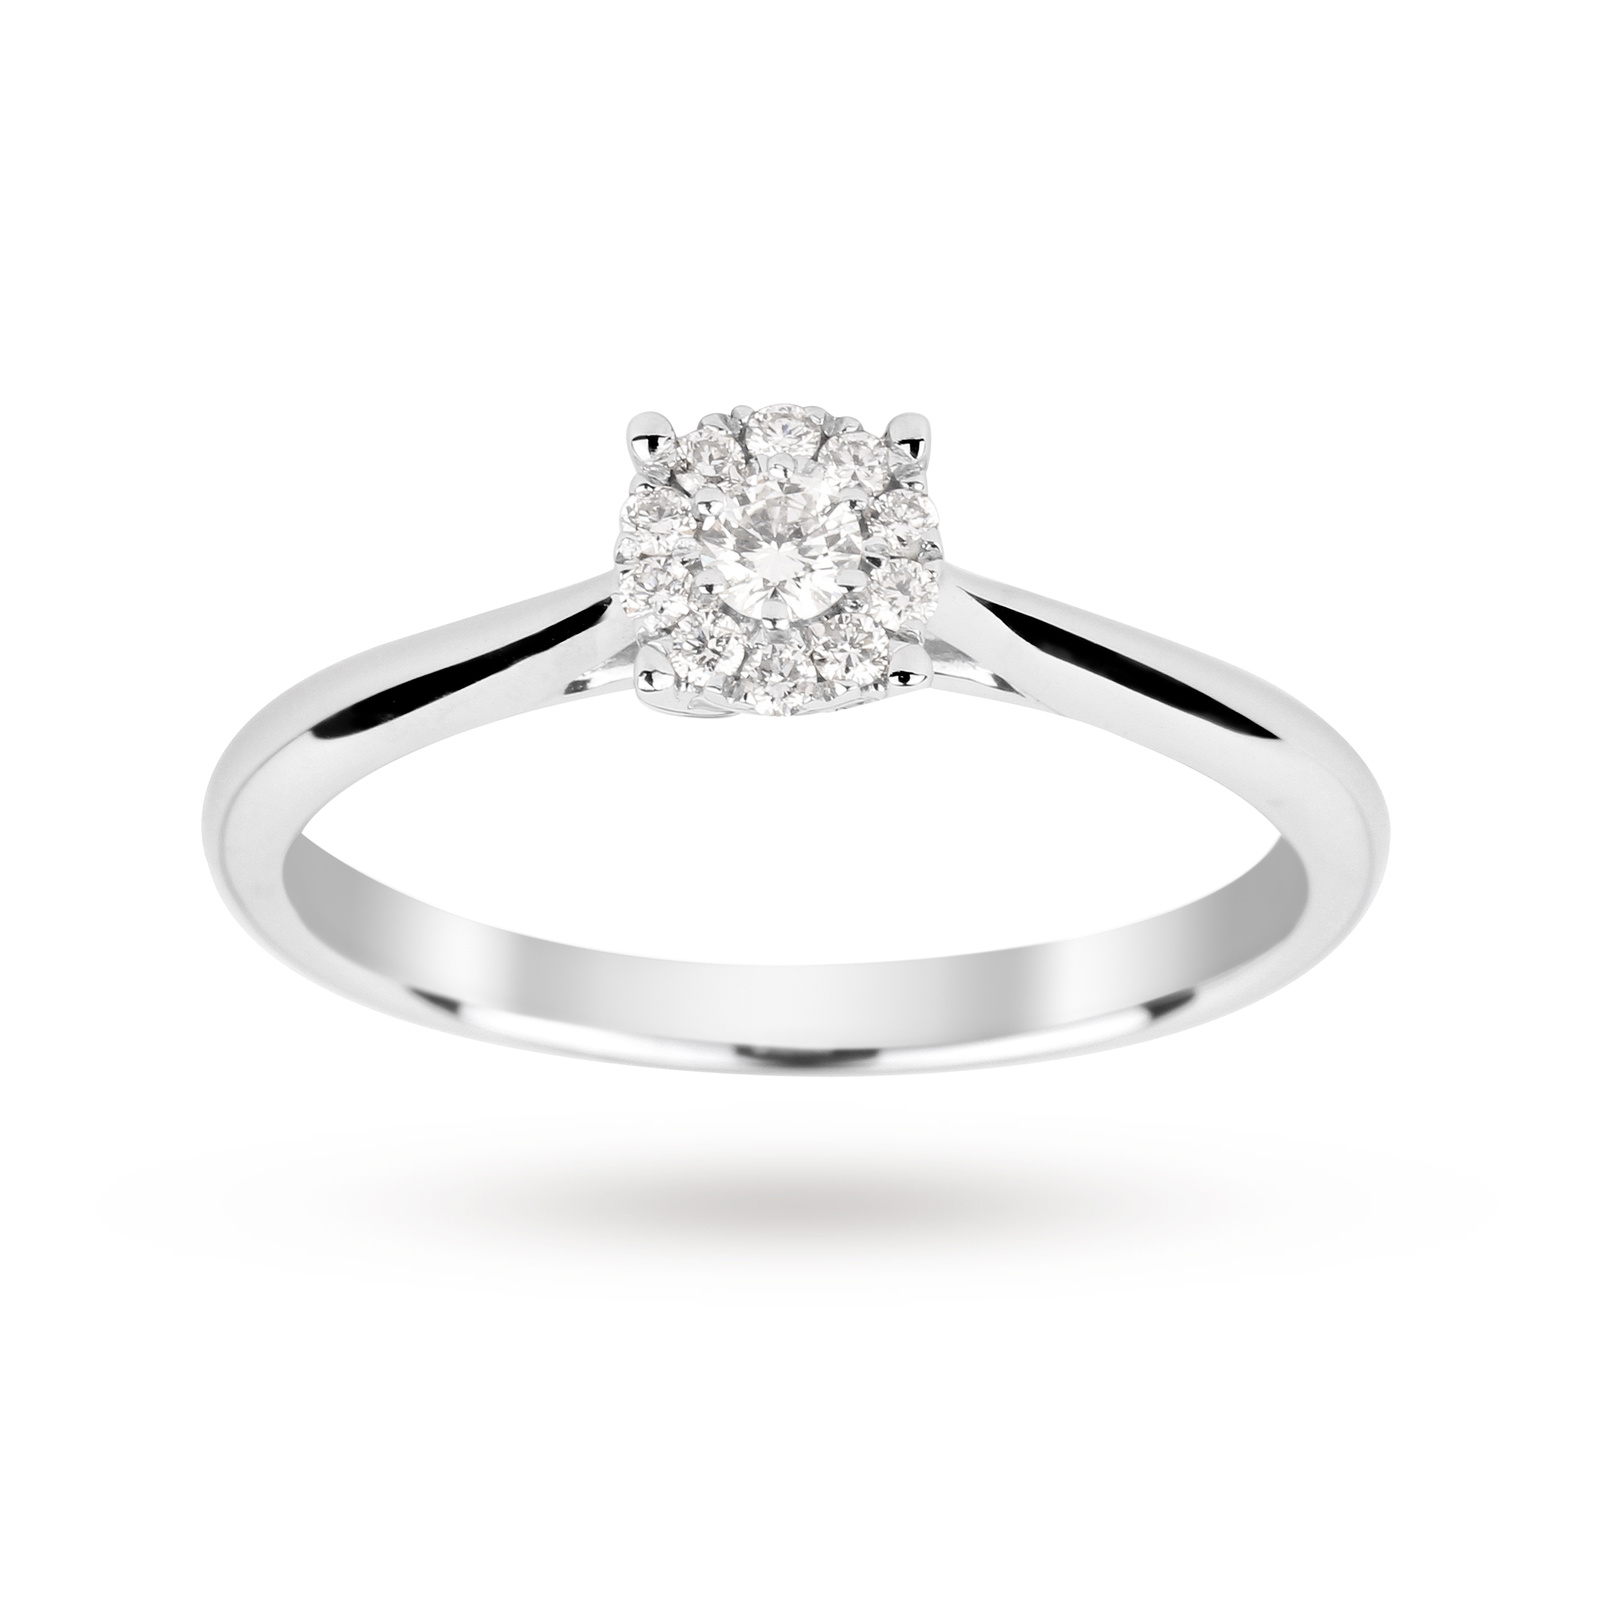 ltd ring actual carat com page buyfinediamonds diamond